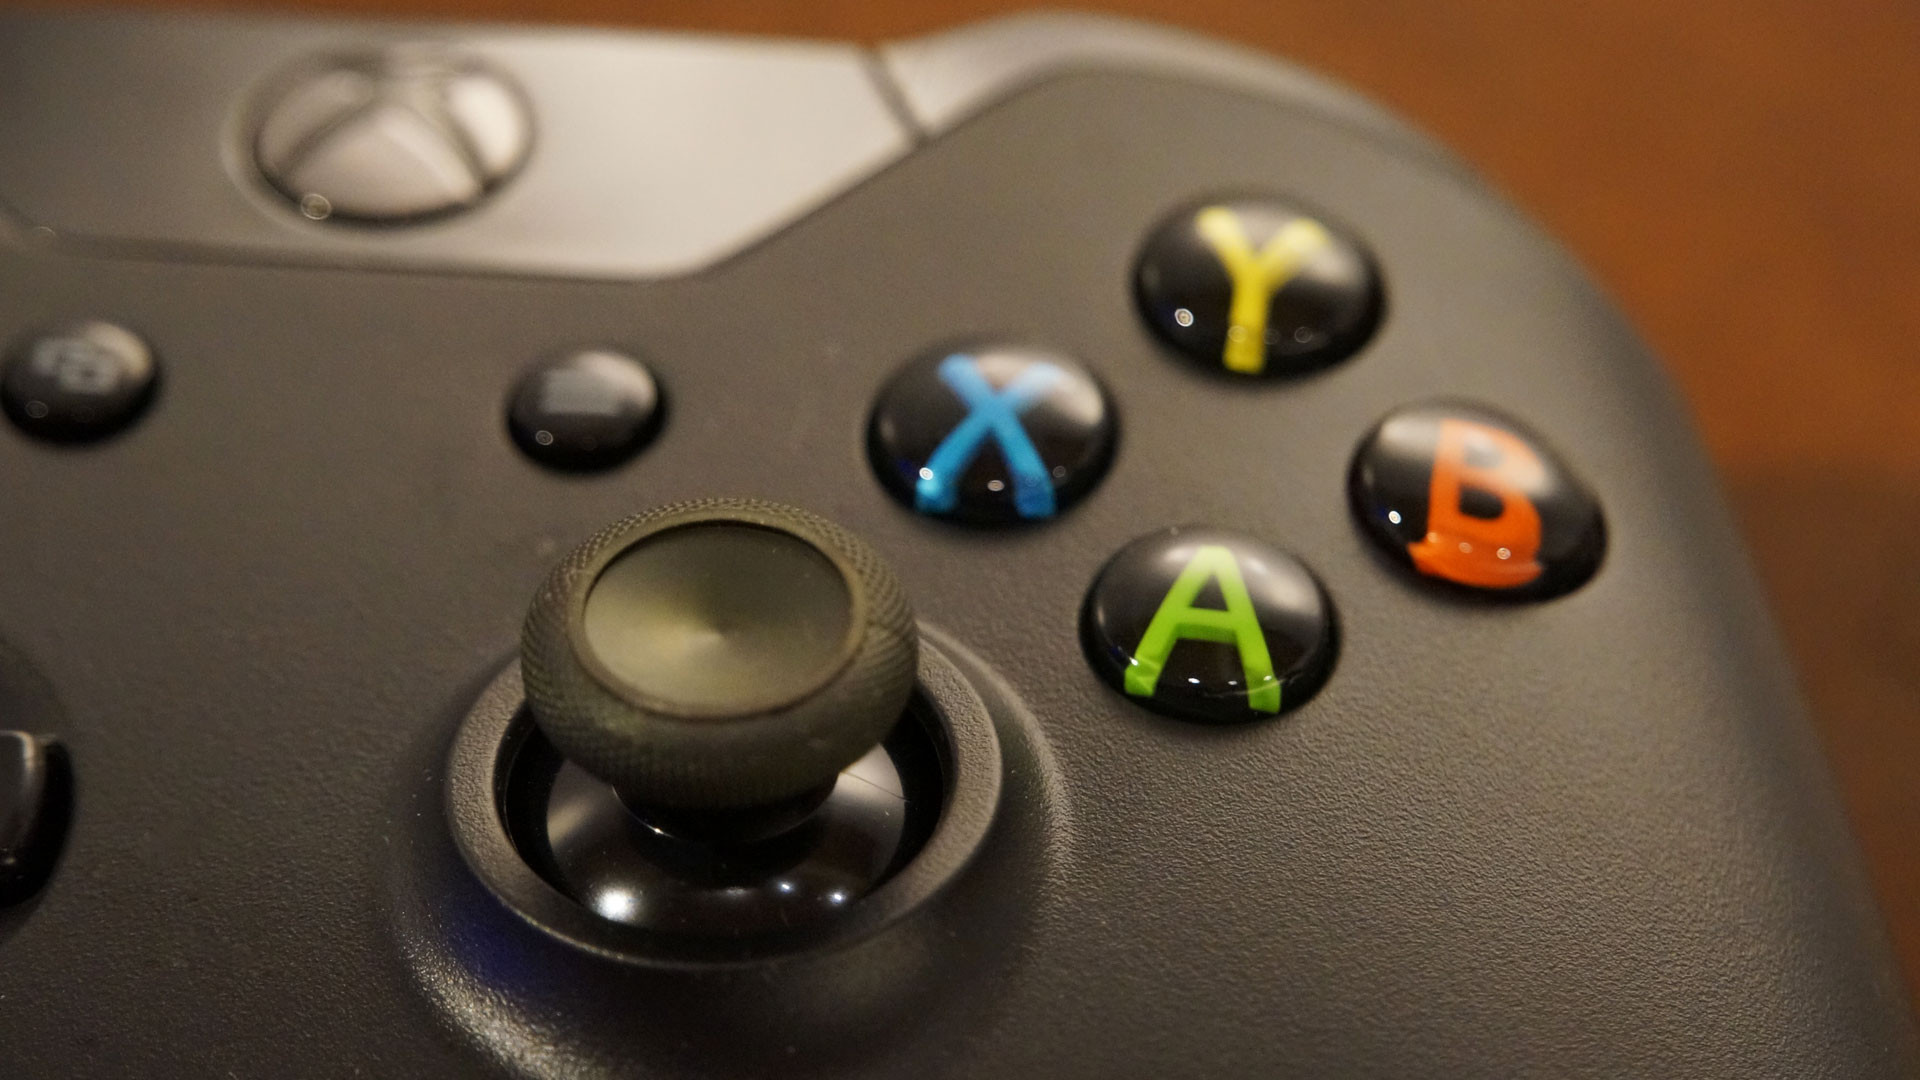 Res: 1920x1080, 5 Awesome HD Gaming Controller Wallpapers